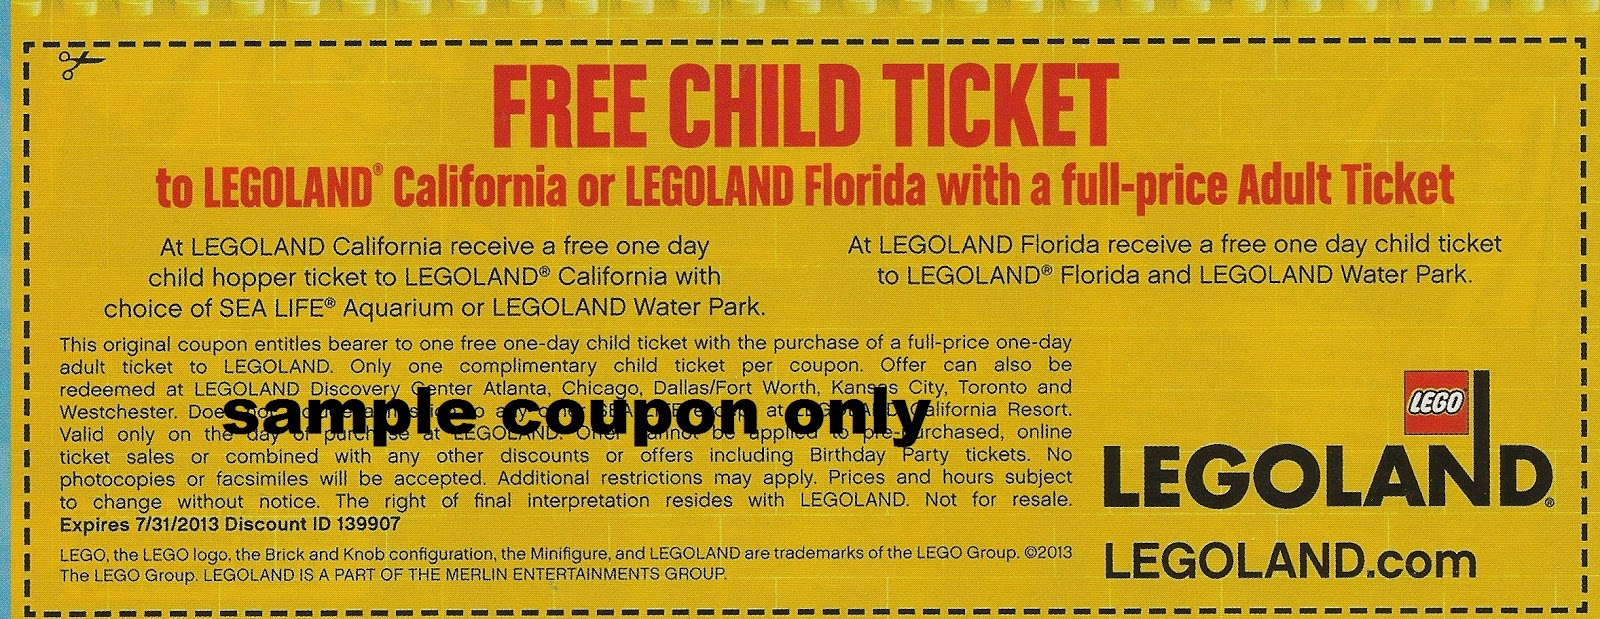 Save with 43 Legoland California coupon codes and promos. Get December deals for discount tickets to Legoland California from RetailMeNot.